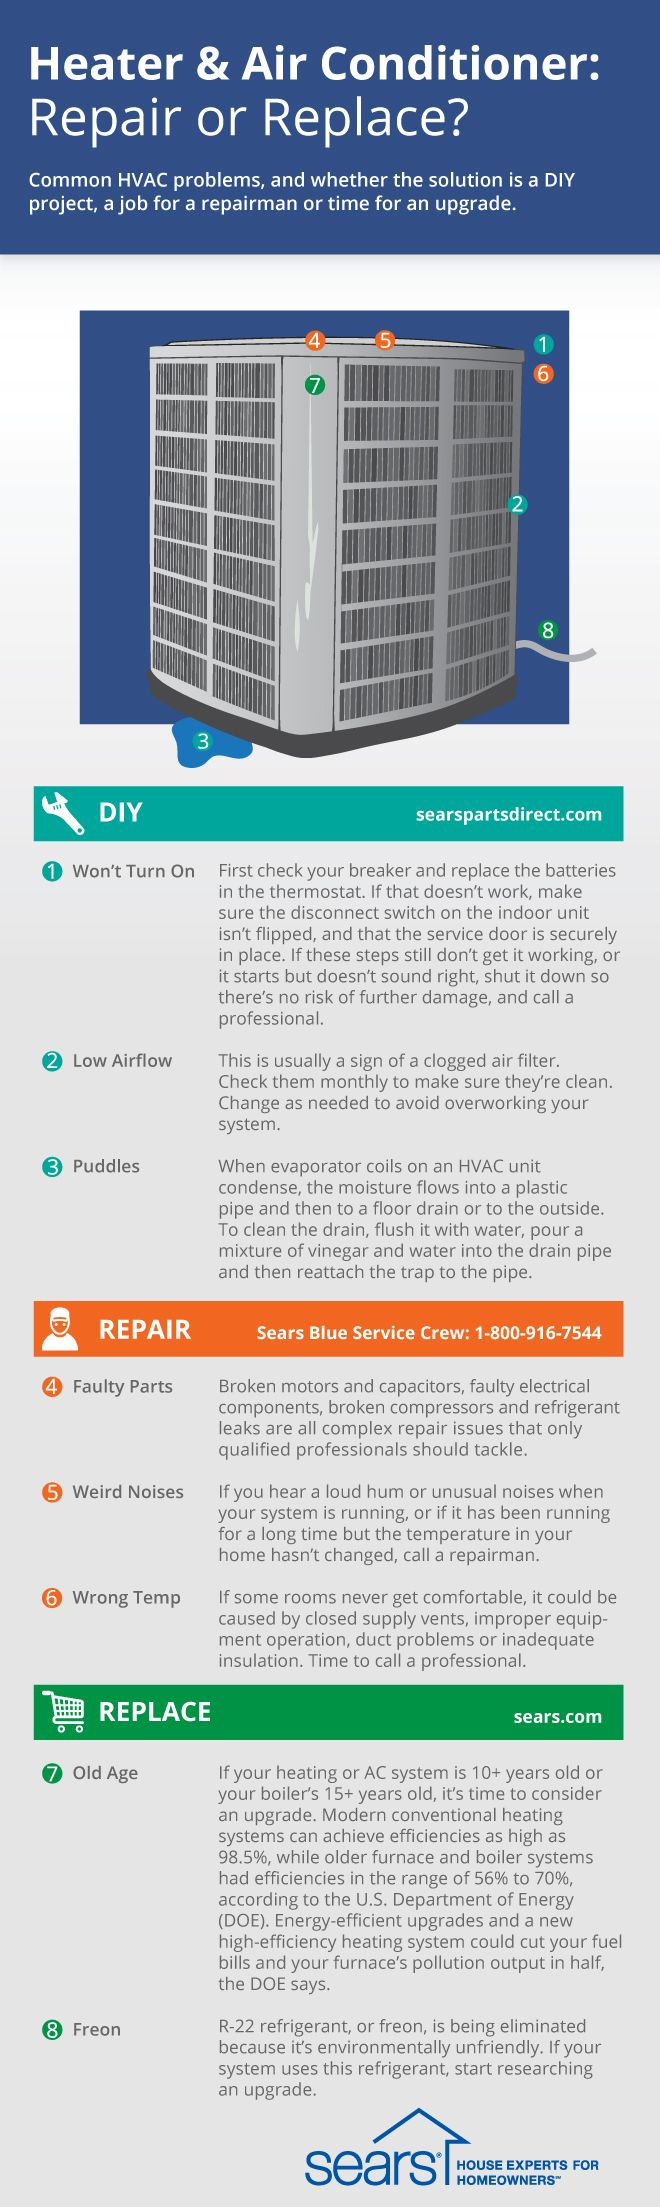 37 best hvac maintenance images on pinterest hvac maintenance air common heating and air conditioning problems our infographic will help you determine if your hvac fandeluxe Image collections